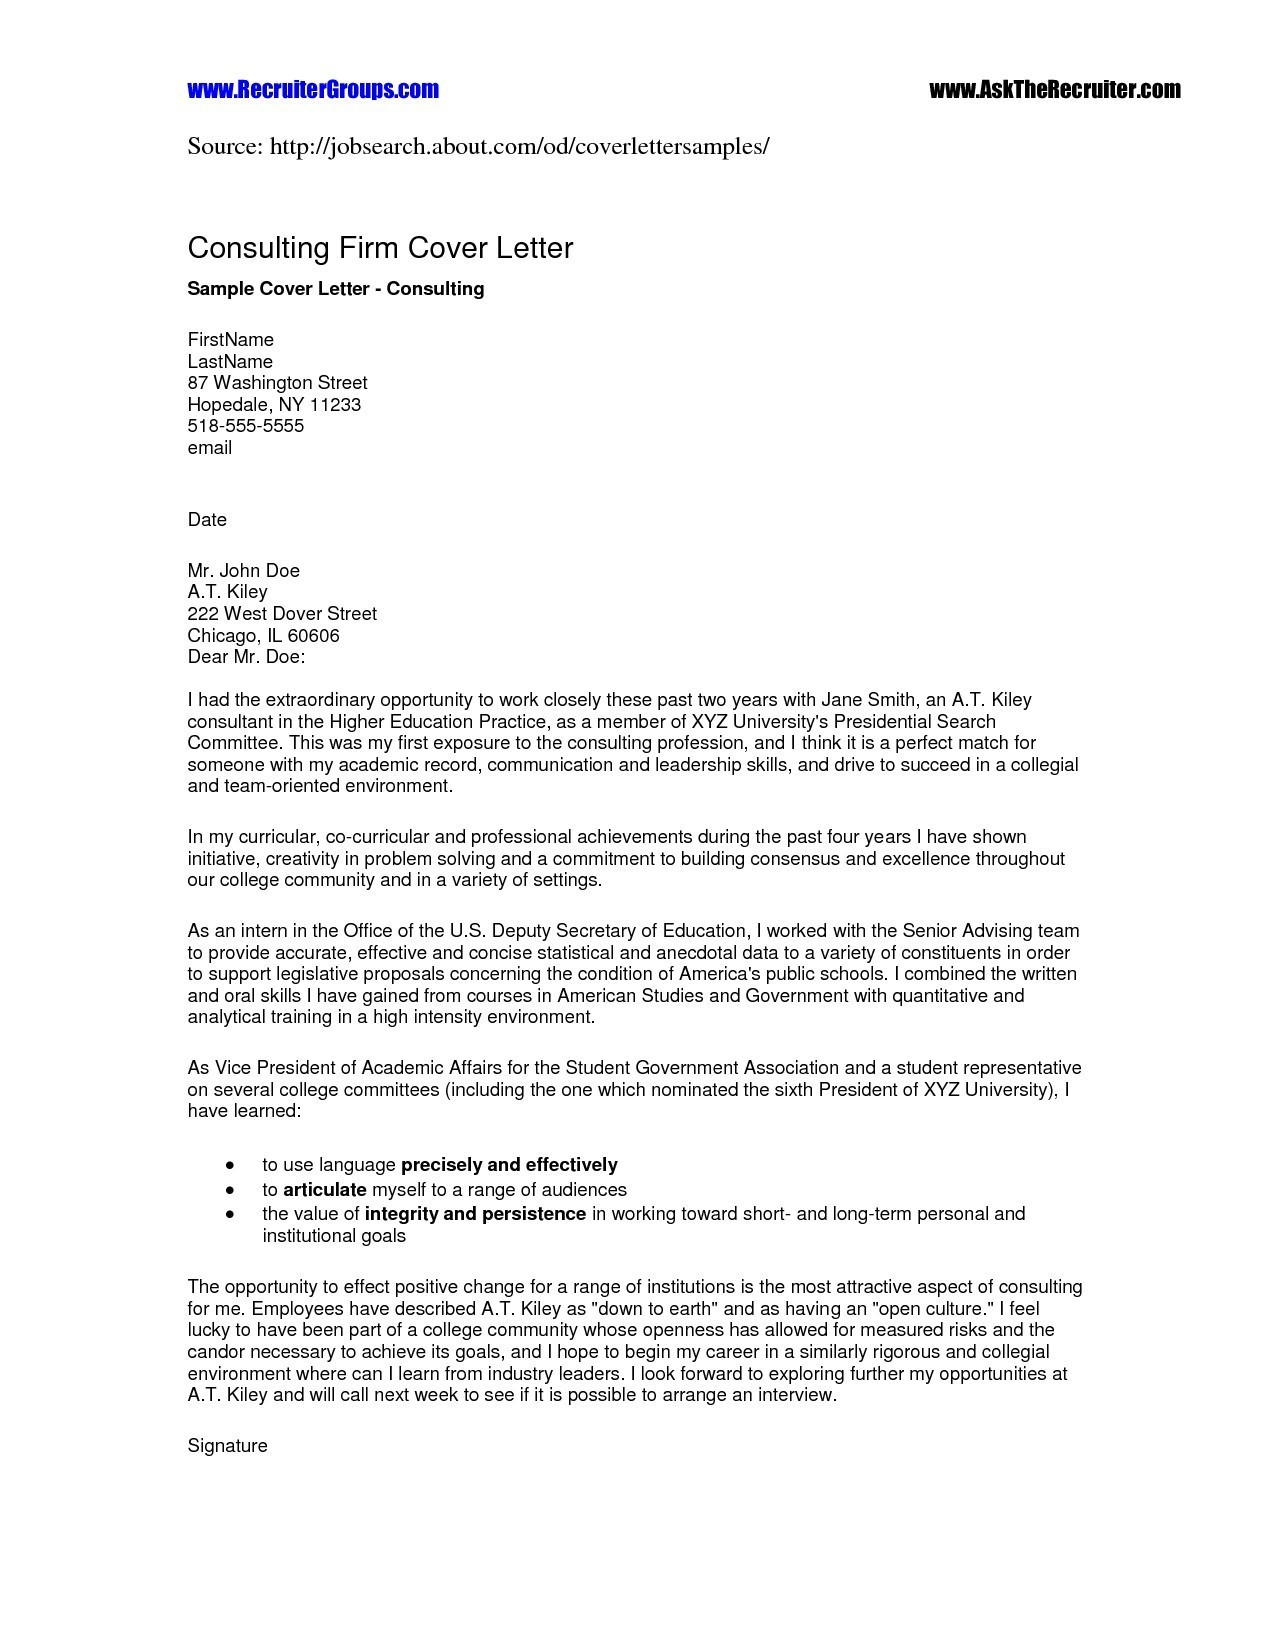 Business Letter format Template - Business Cover Letter format Sample Fresh format Business Cover